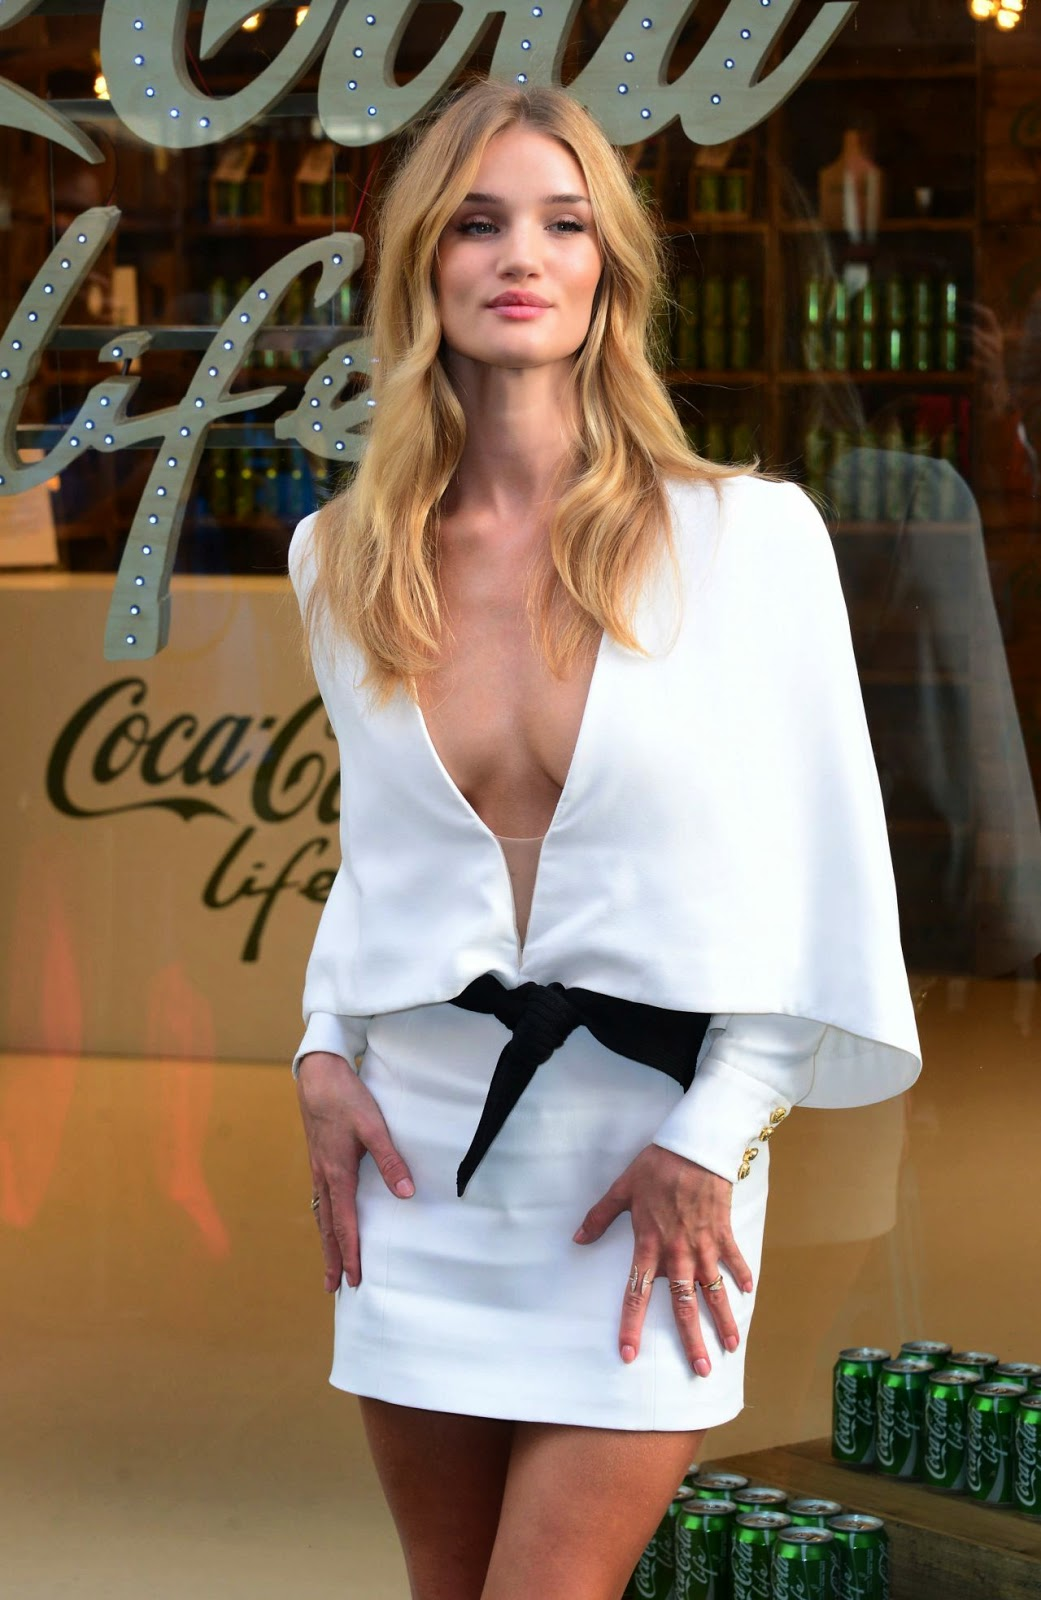 rosie-huntington-whiteley-01